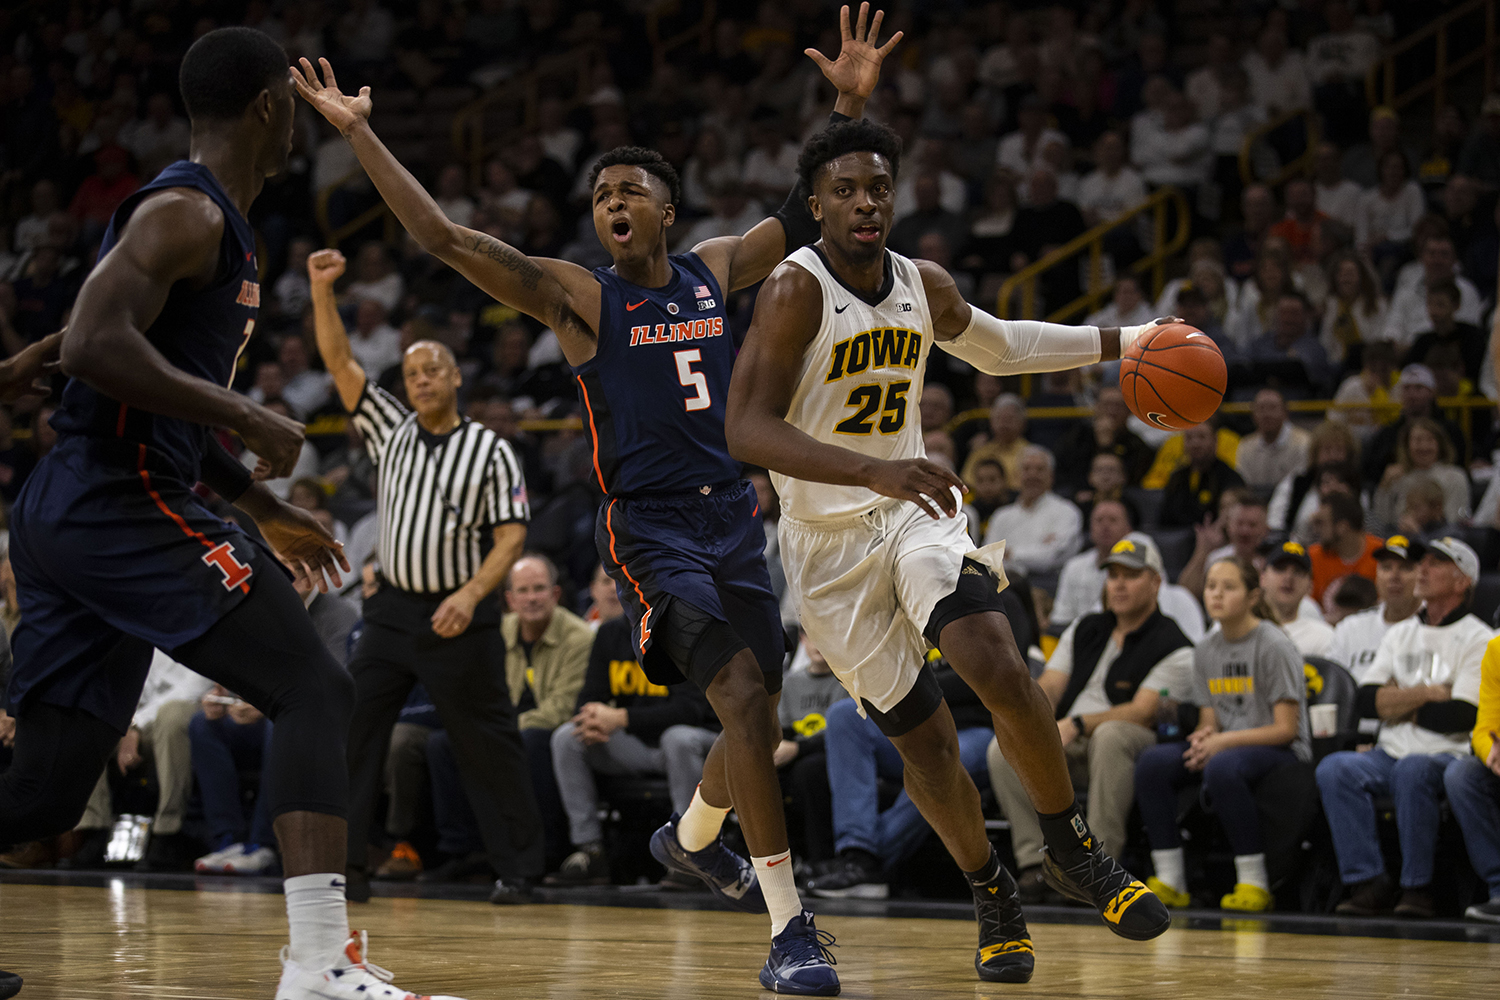 Iowa+forward+Tyler+Cook+drives+to+the+hoop+during+the+Iowa%2FIllinois+men%27s+basketball+game+at+Carver-Hawkeye+Arena+on+Sunday%2C+January+20%2C+2019.+The+Hawkeyes+defeated+the+Fighting+Illini%2C+95-71.+